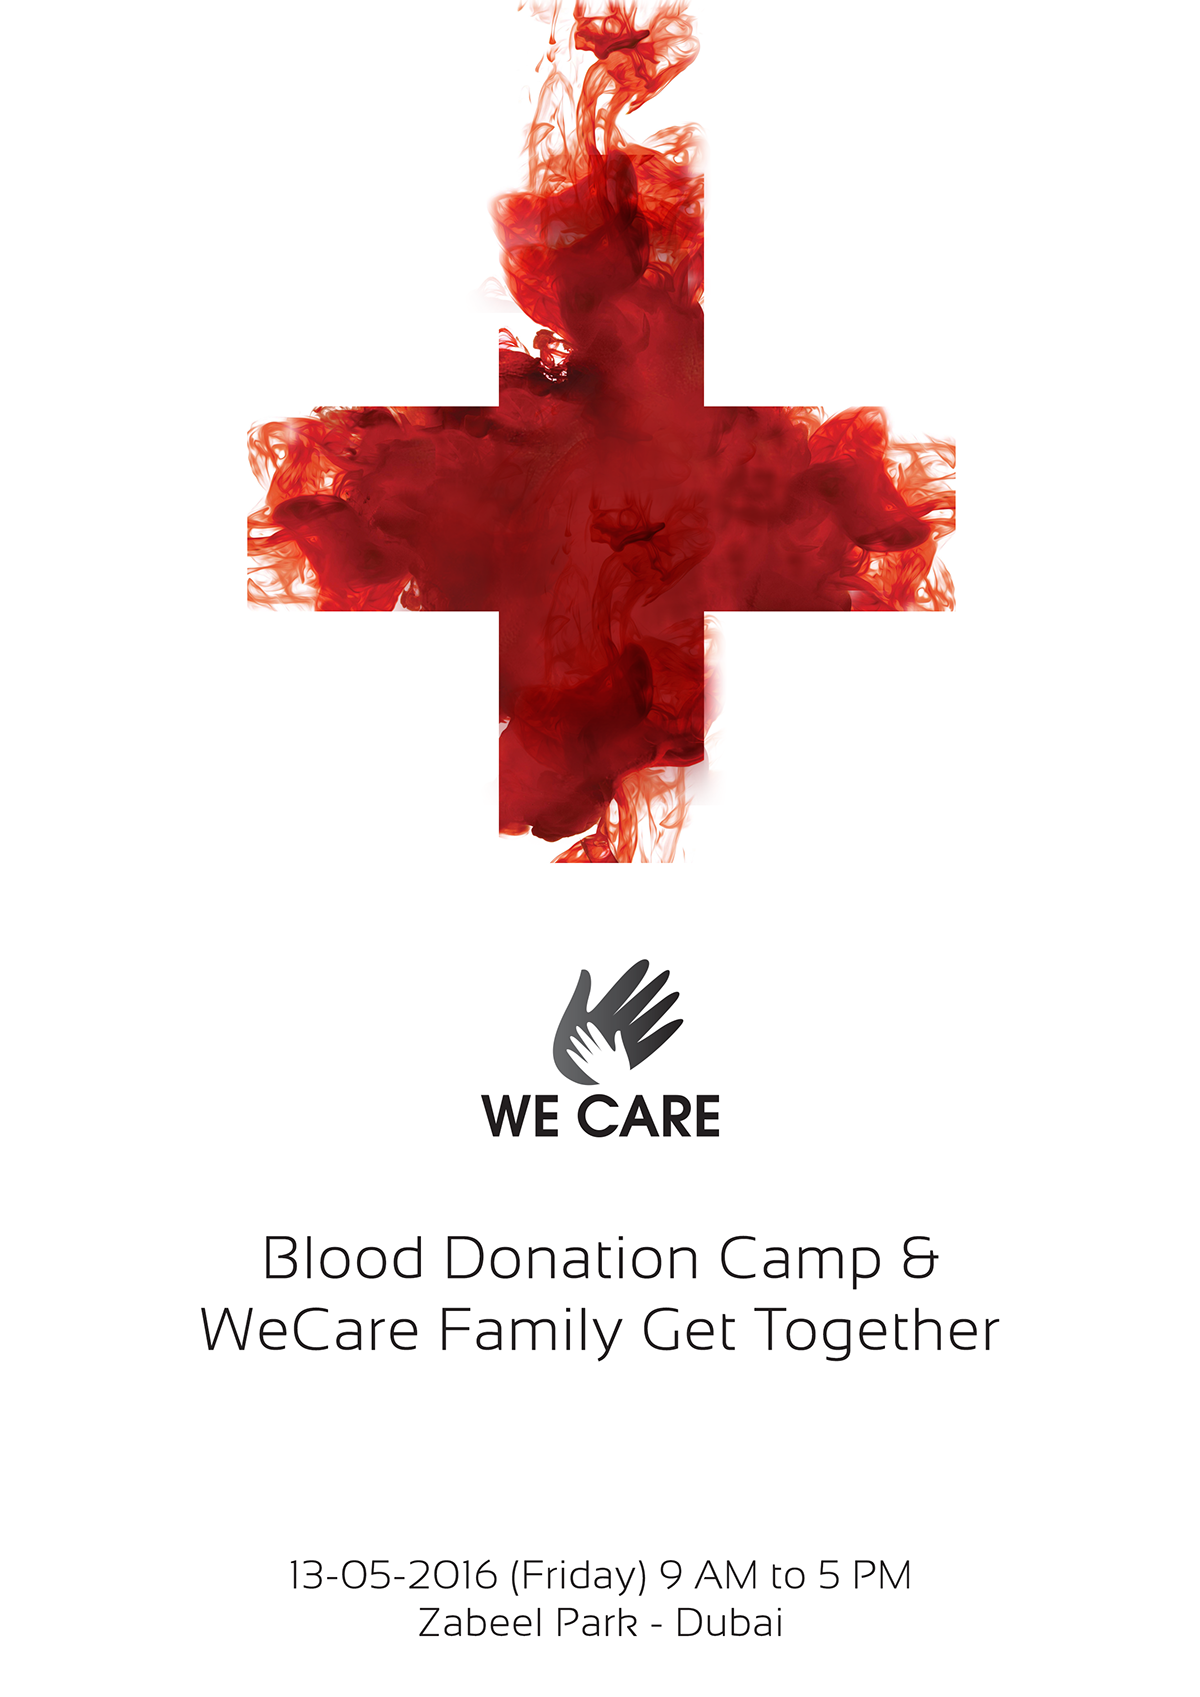 Poster design on blood donation - We Care Blood Donation Camp